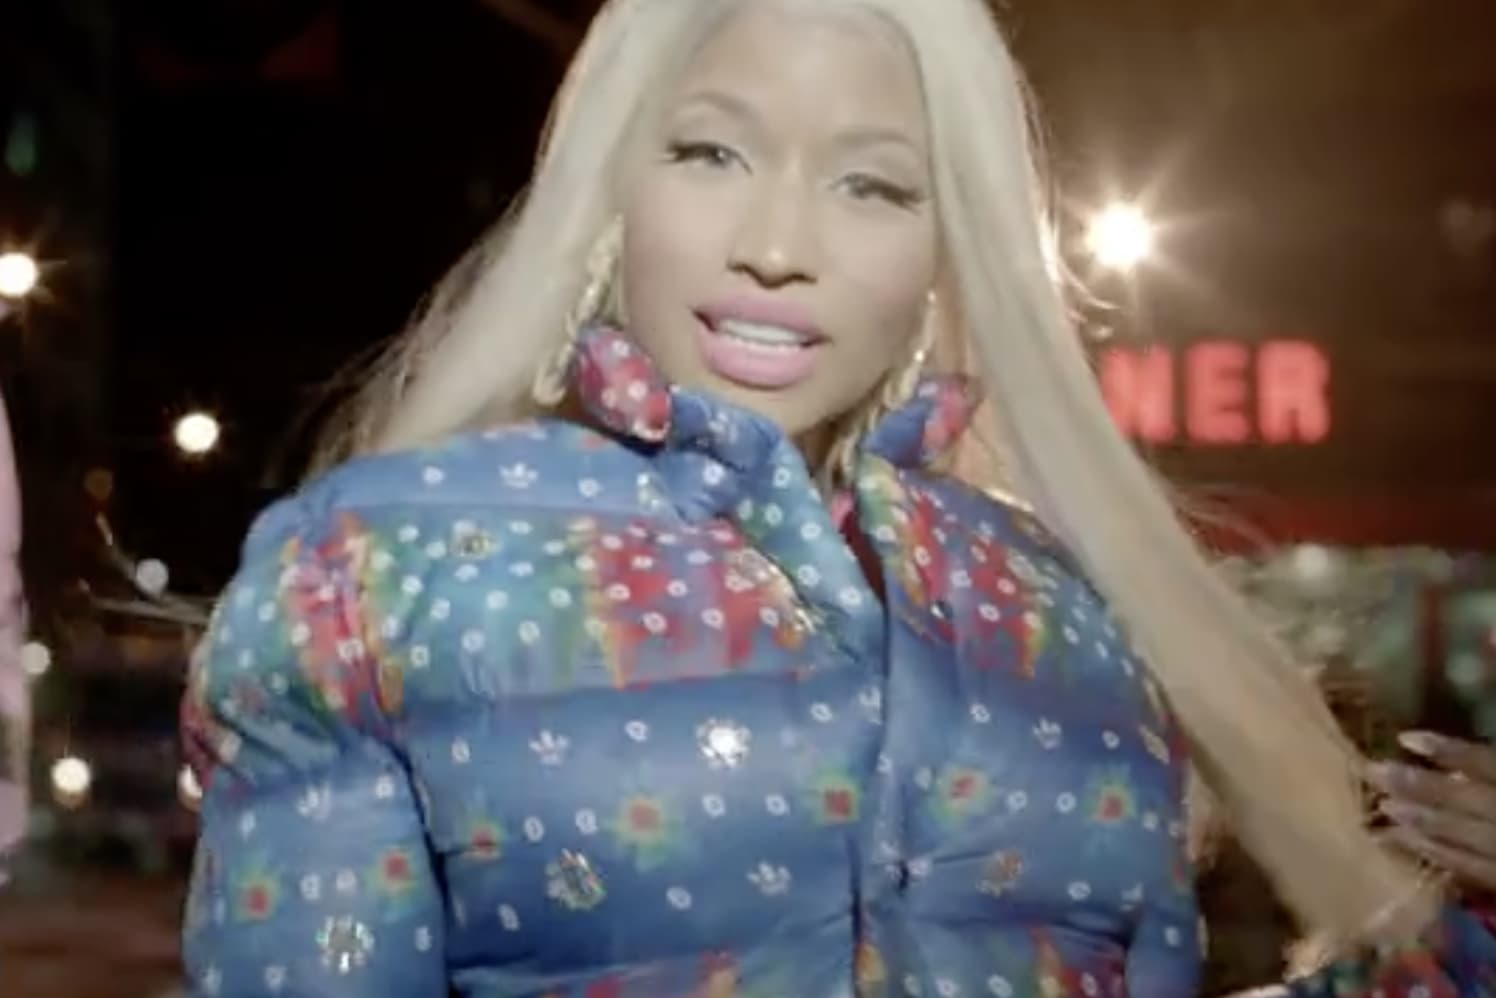 ADIDAS ORIGINALS FT. NICKI MINAJ